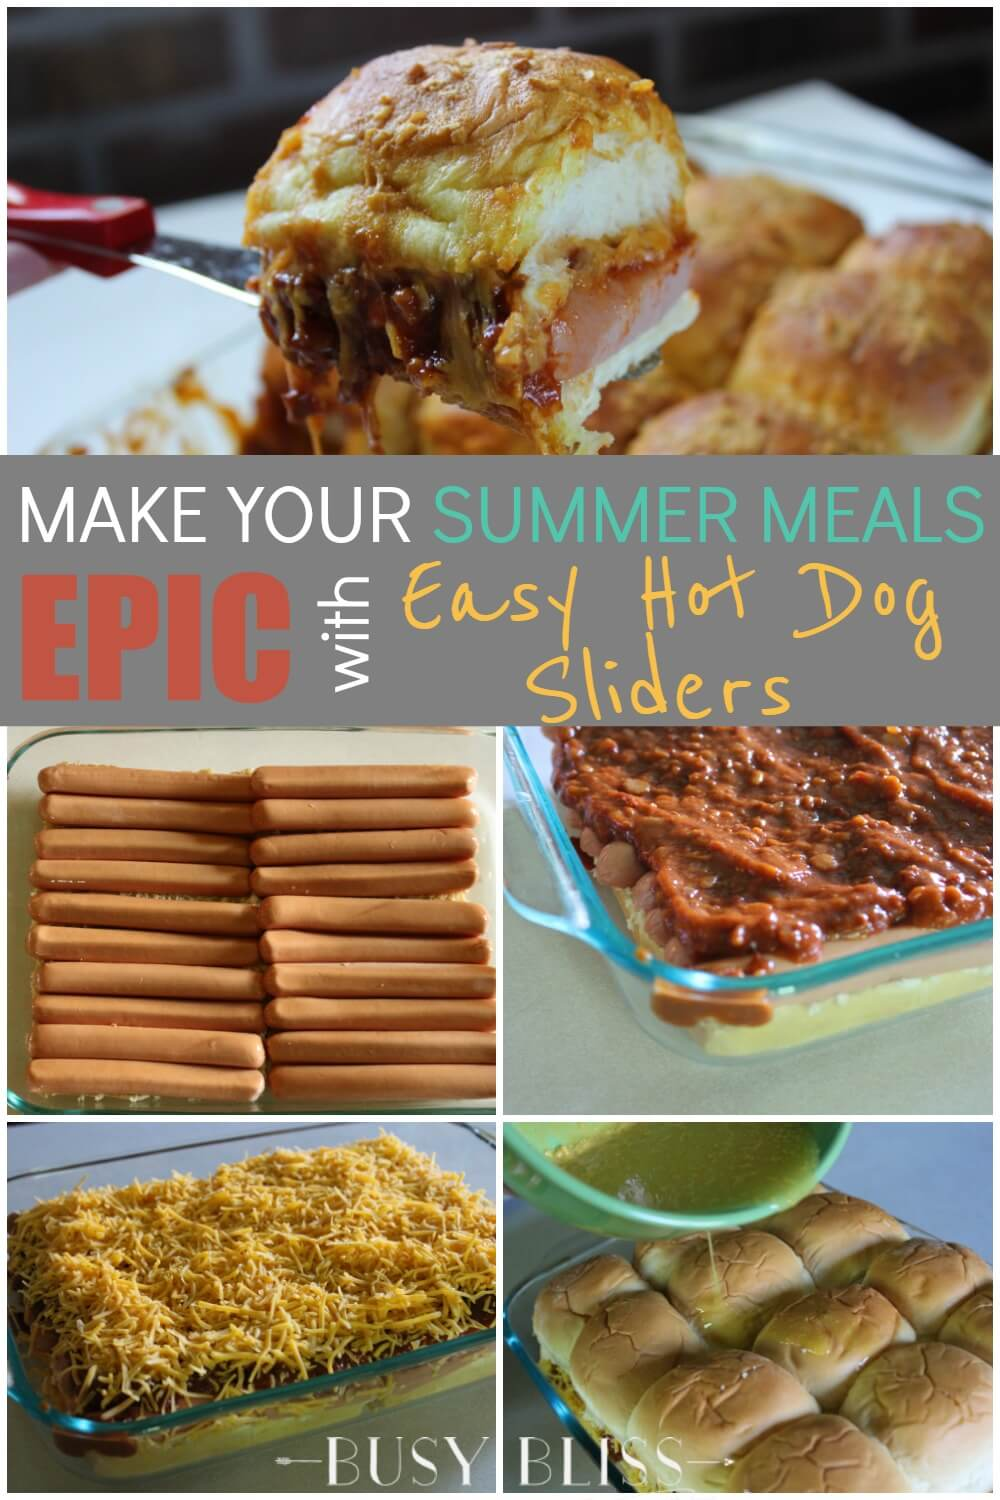 Simple Potatoes Baked Hot Dogs Chili Cheese Hot Dog Summer A Twist On Make Your Summer Meals Epic Foil Easy Hot Dog Sliders Busy Bliss Baked Hot Dogs nice food Baked Hot Dogs